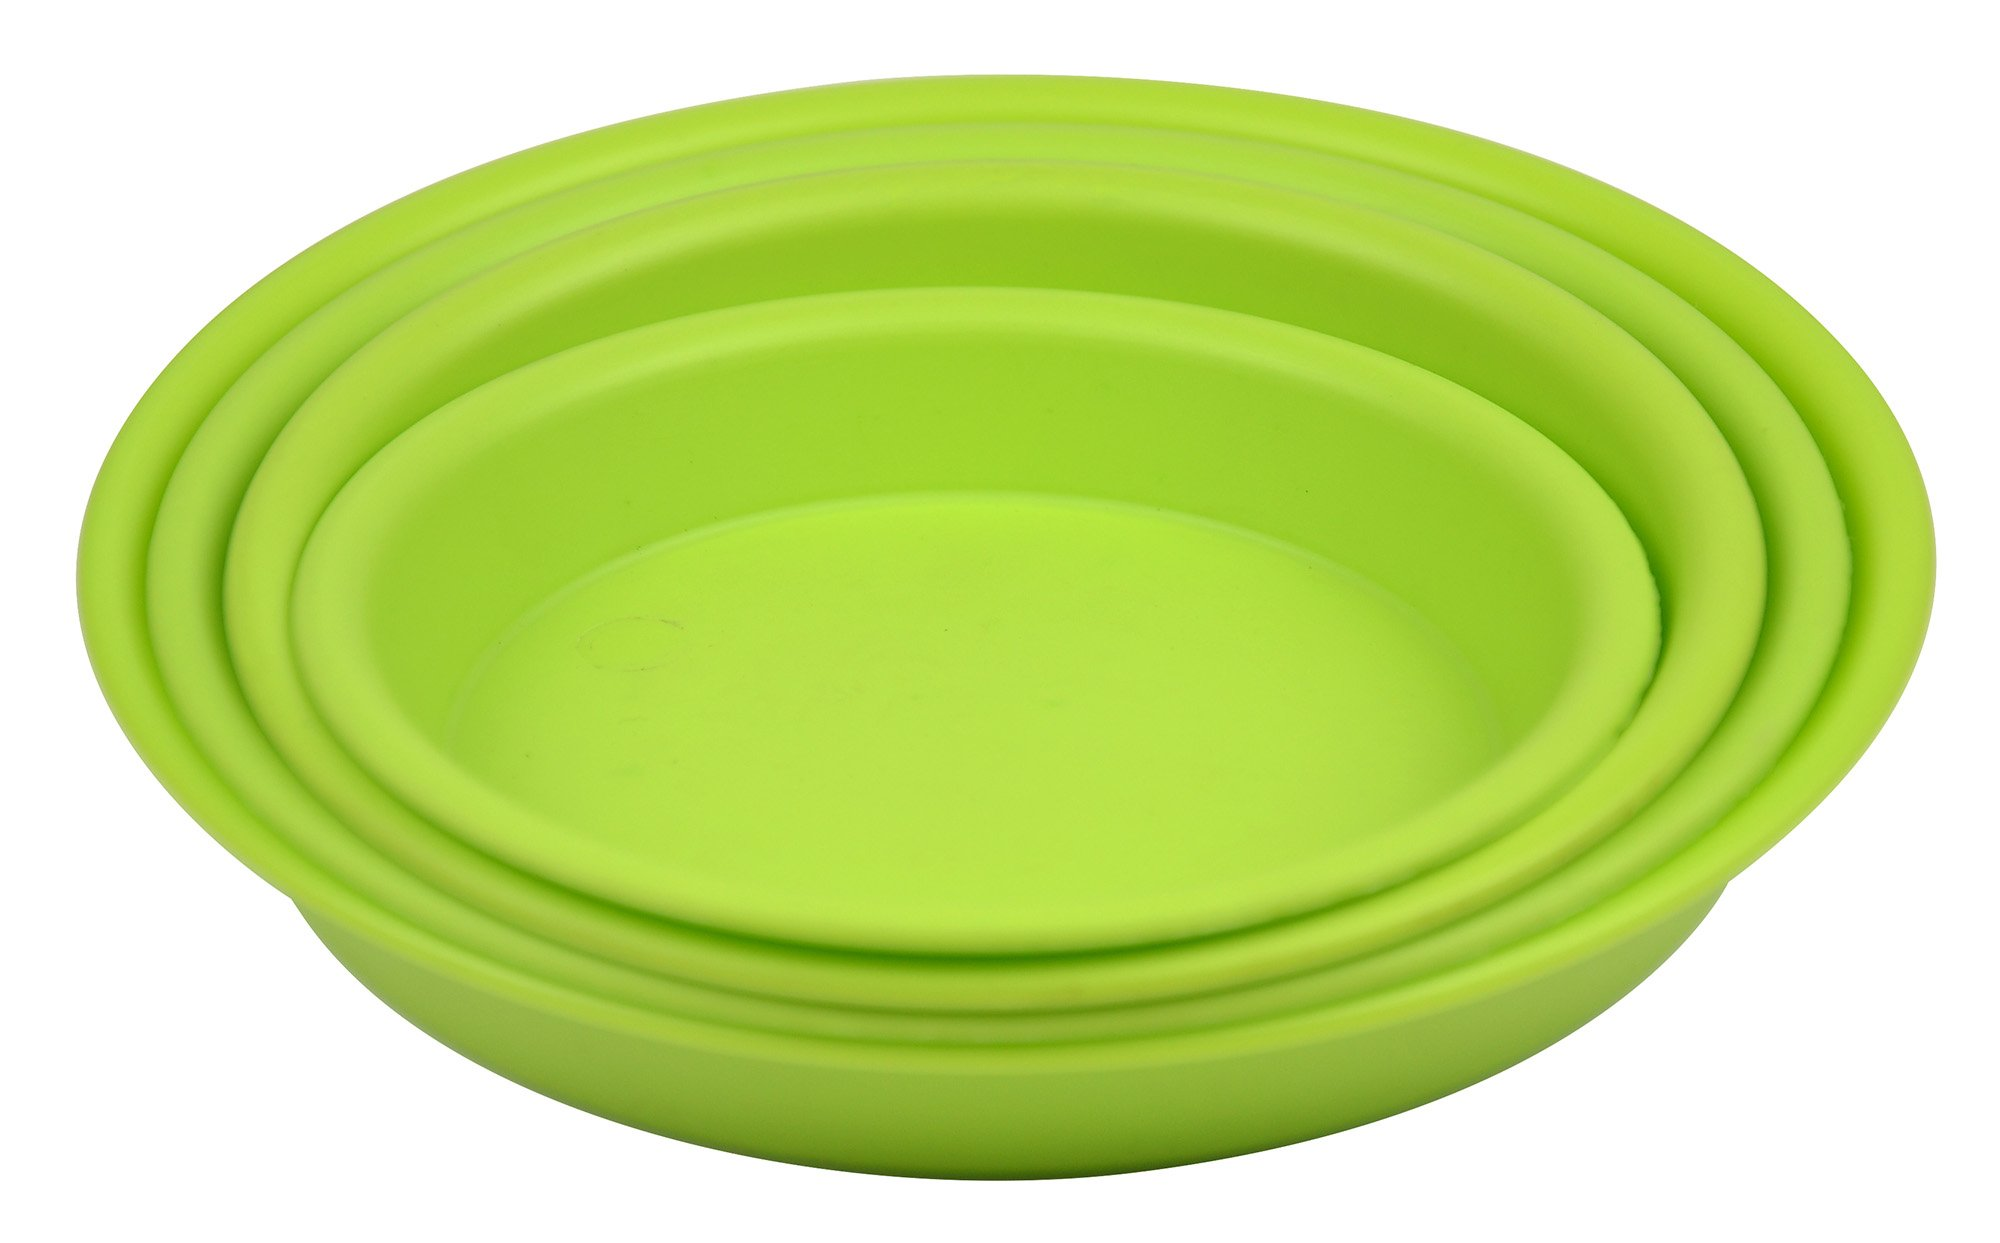 7.7'' Round Plant Saucer Planter Tray Pat Pallet for Flowerpot,Green,960 Count by Zhanwang